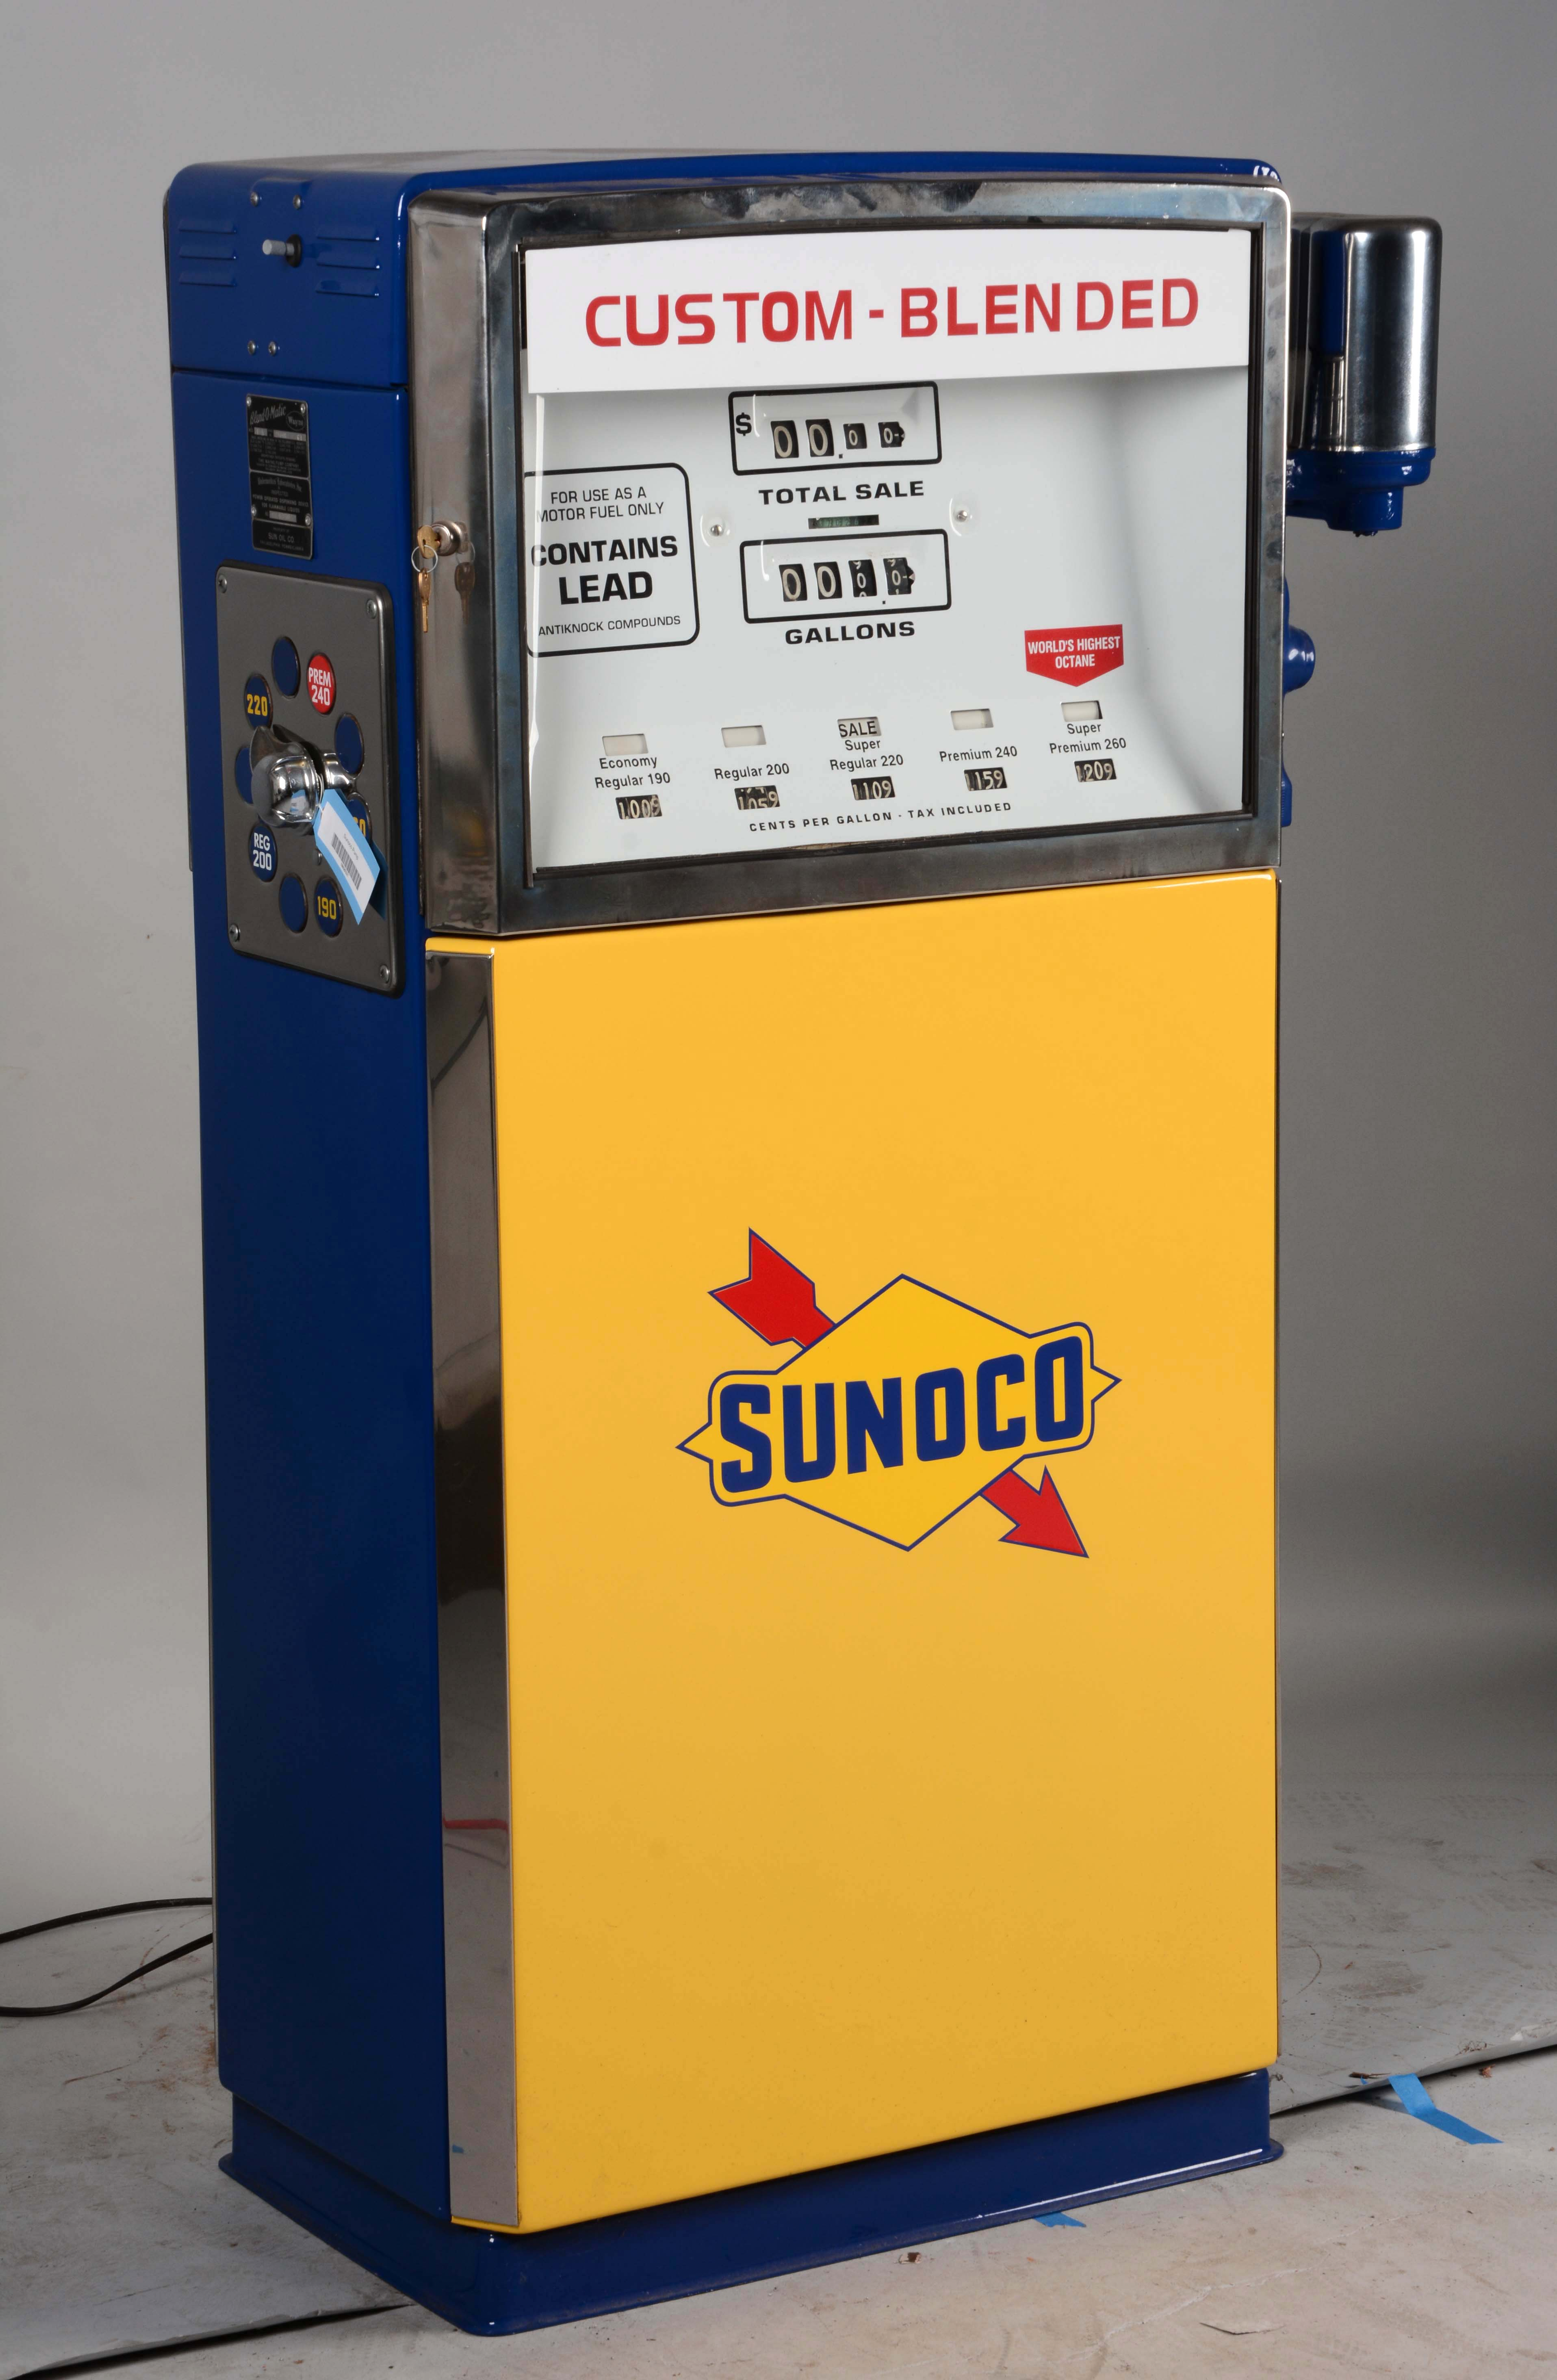 Gas Prices Las Vegas >> Lot Detail - Wayne Blend-O-Matic Gas Pump Restored In Sunoco.